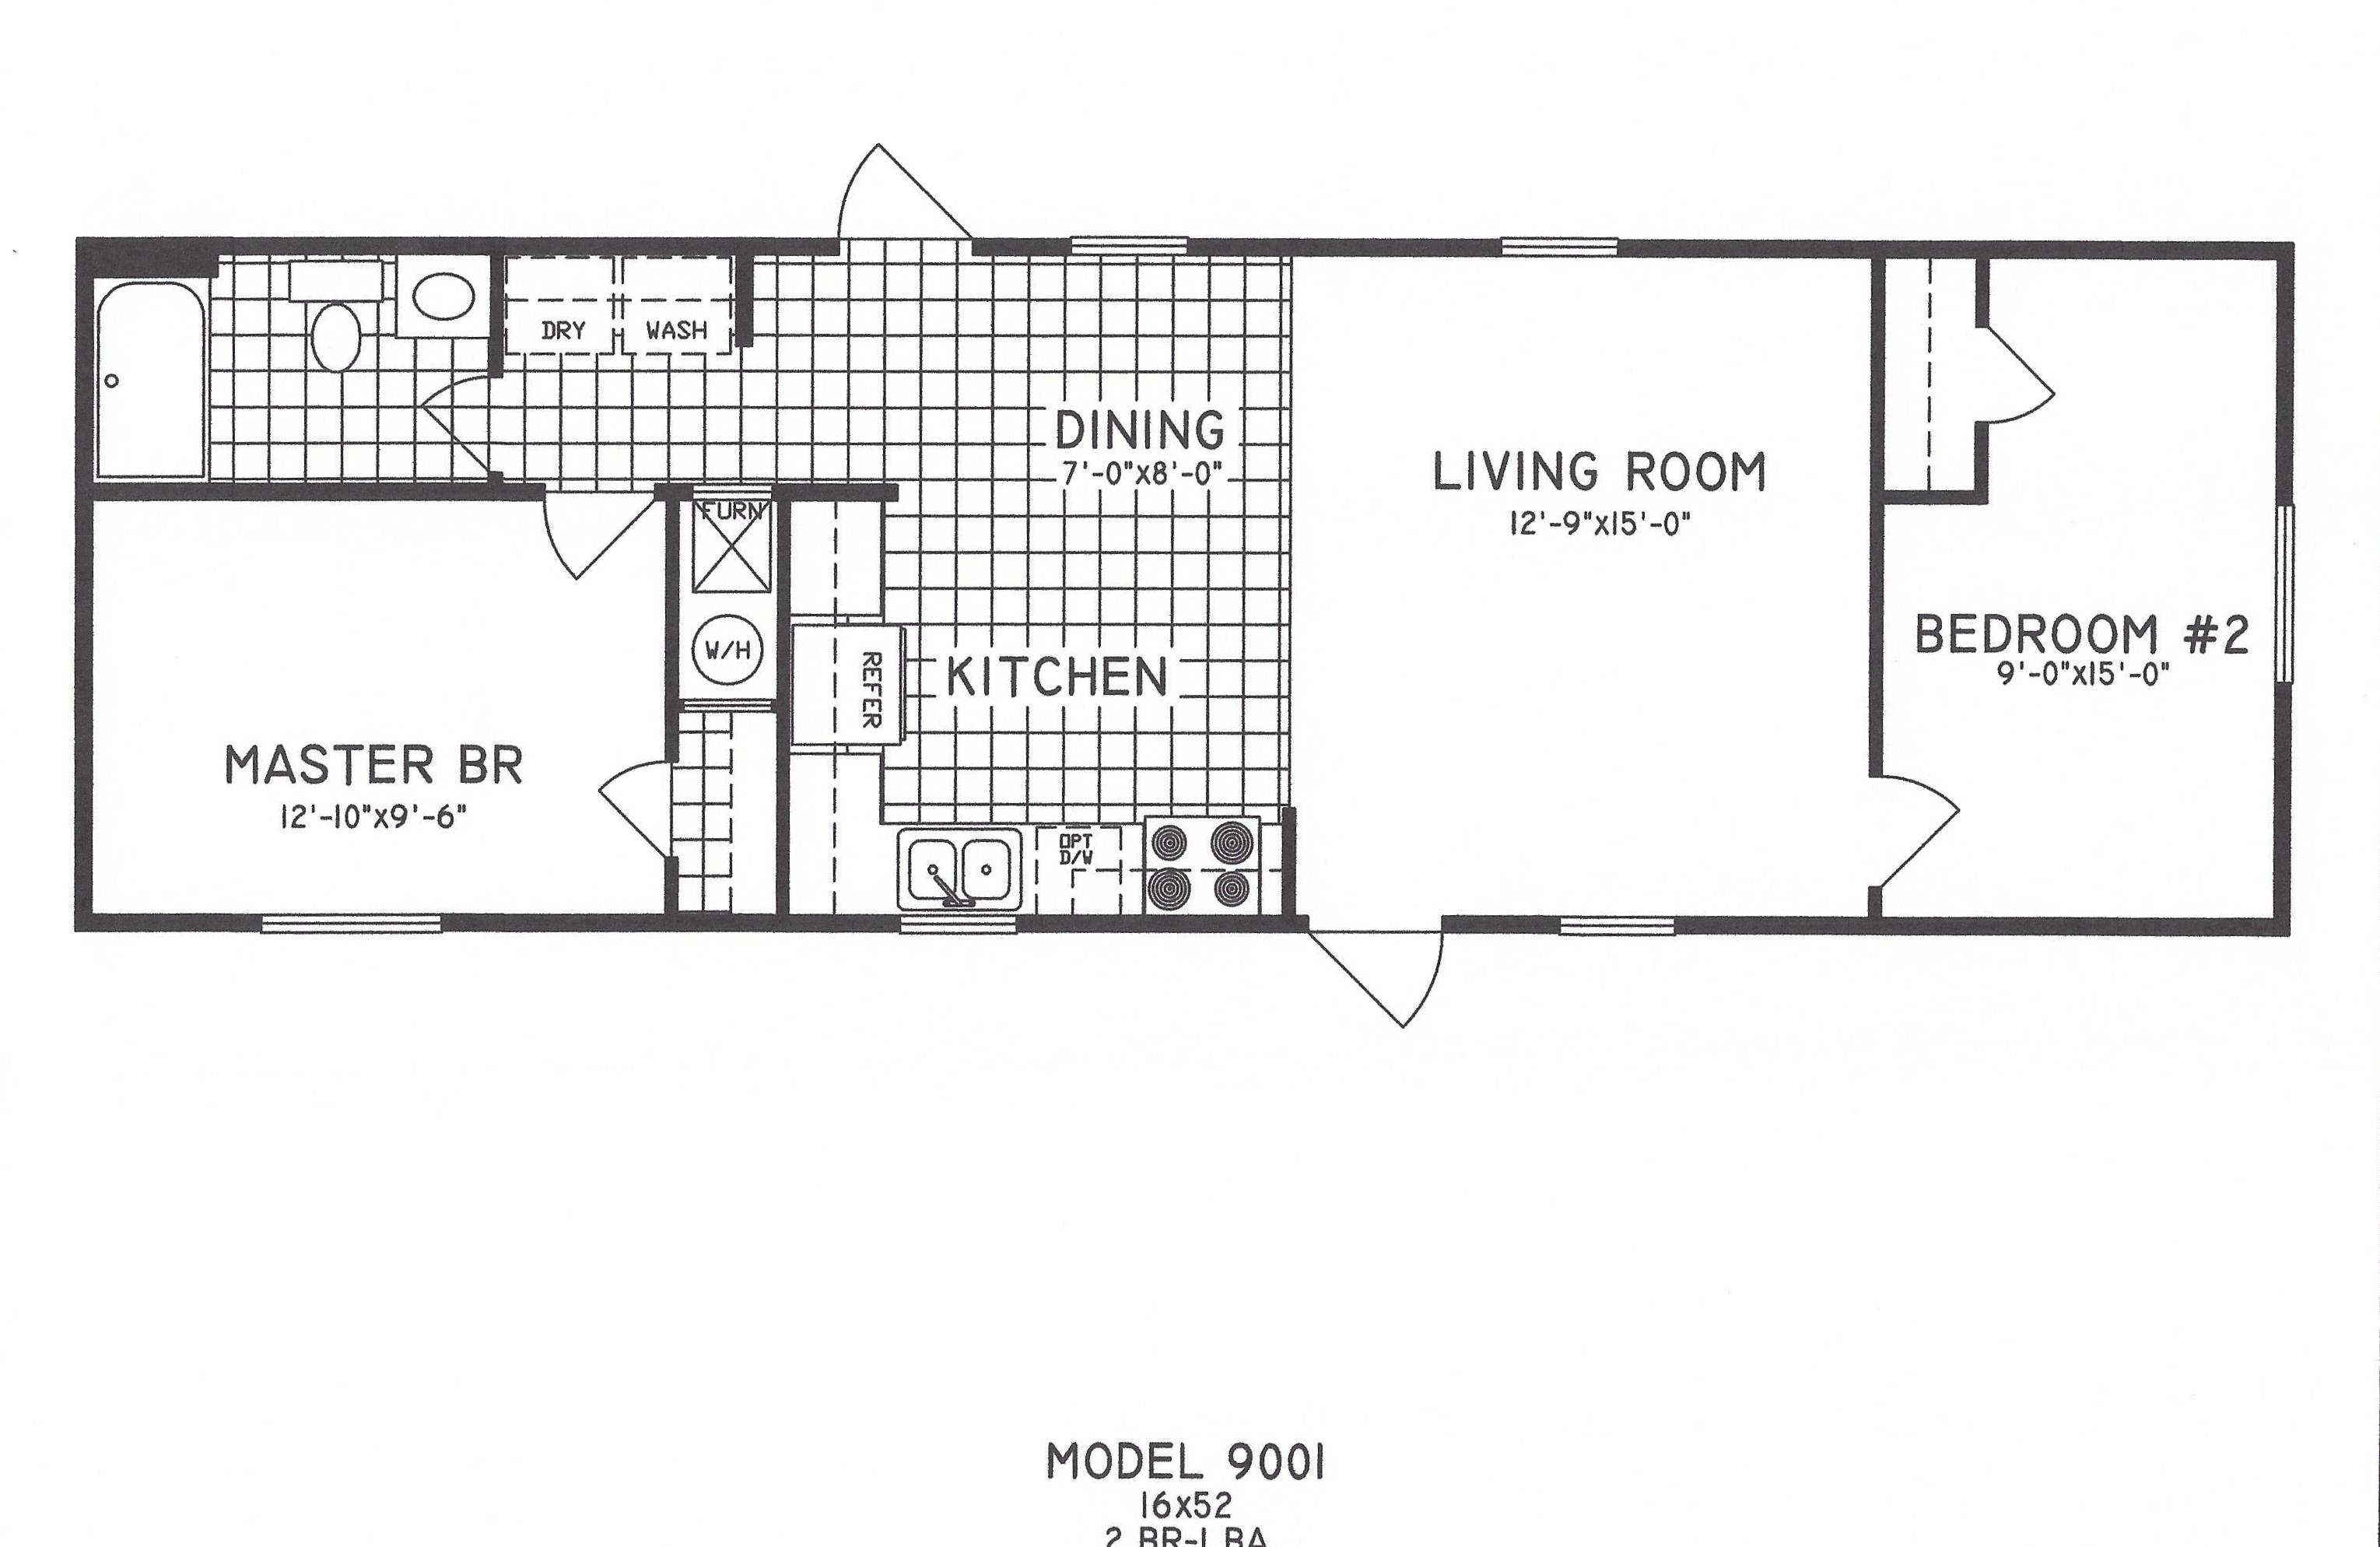 2 bedroom floor plan c 9001 hawks homes manufactured for Two bedroom plan